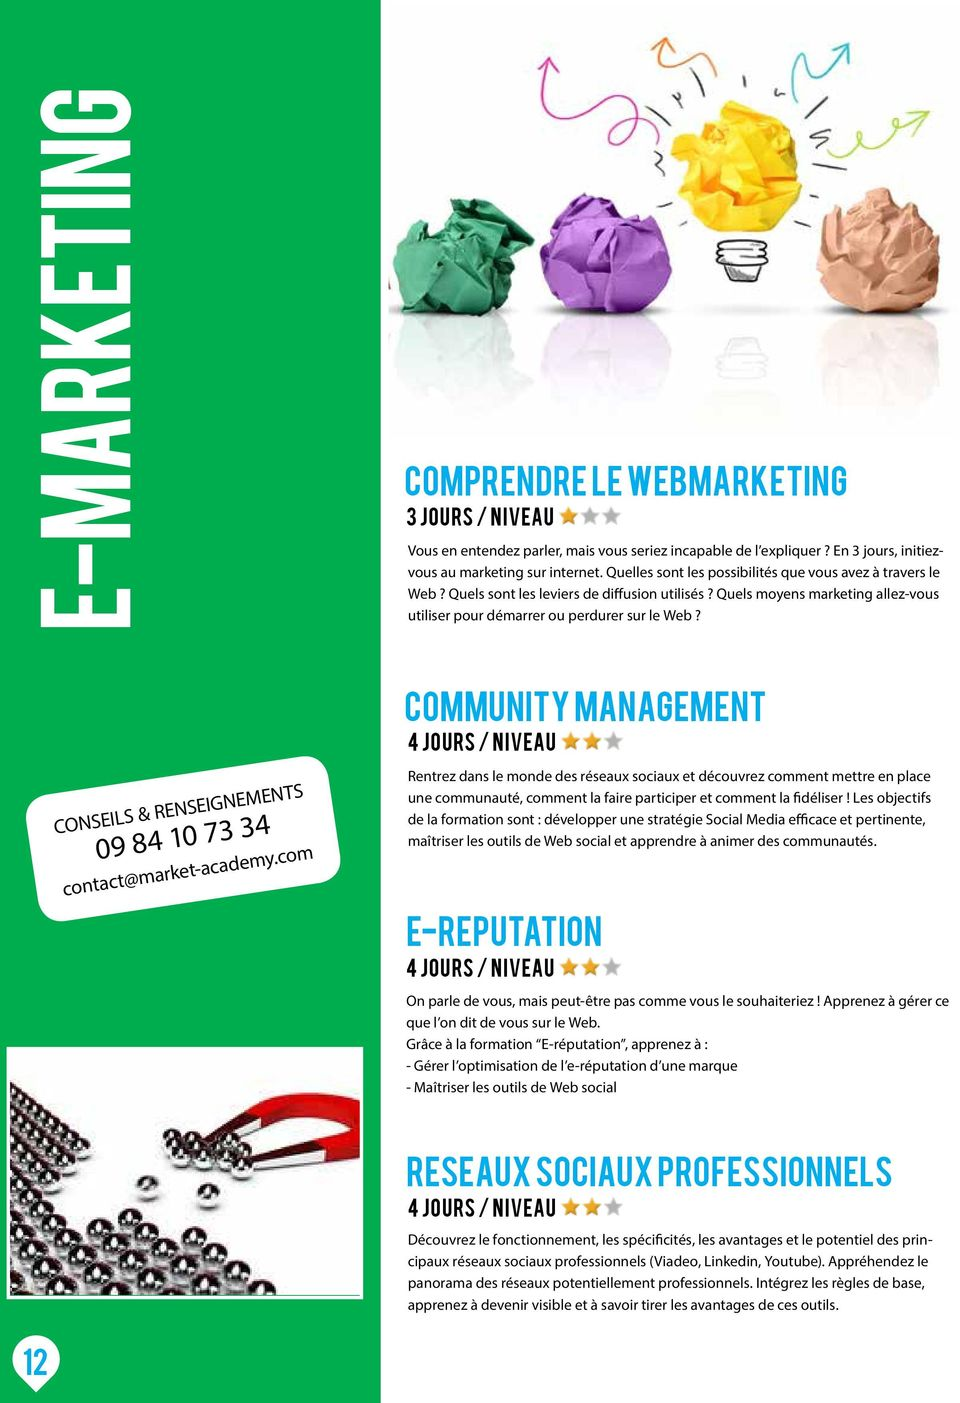 CONSEILS & RENSEIGNEMENTS 09 84 10 73 34 contact@market-academy.